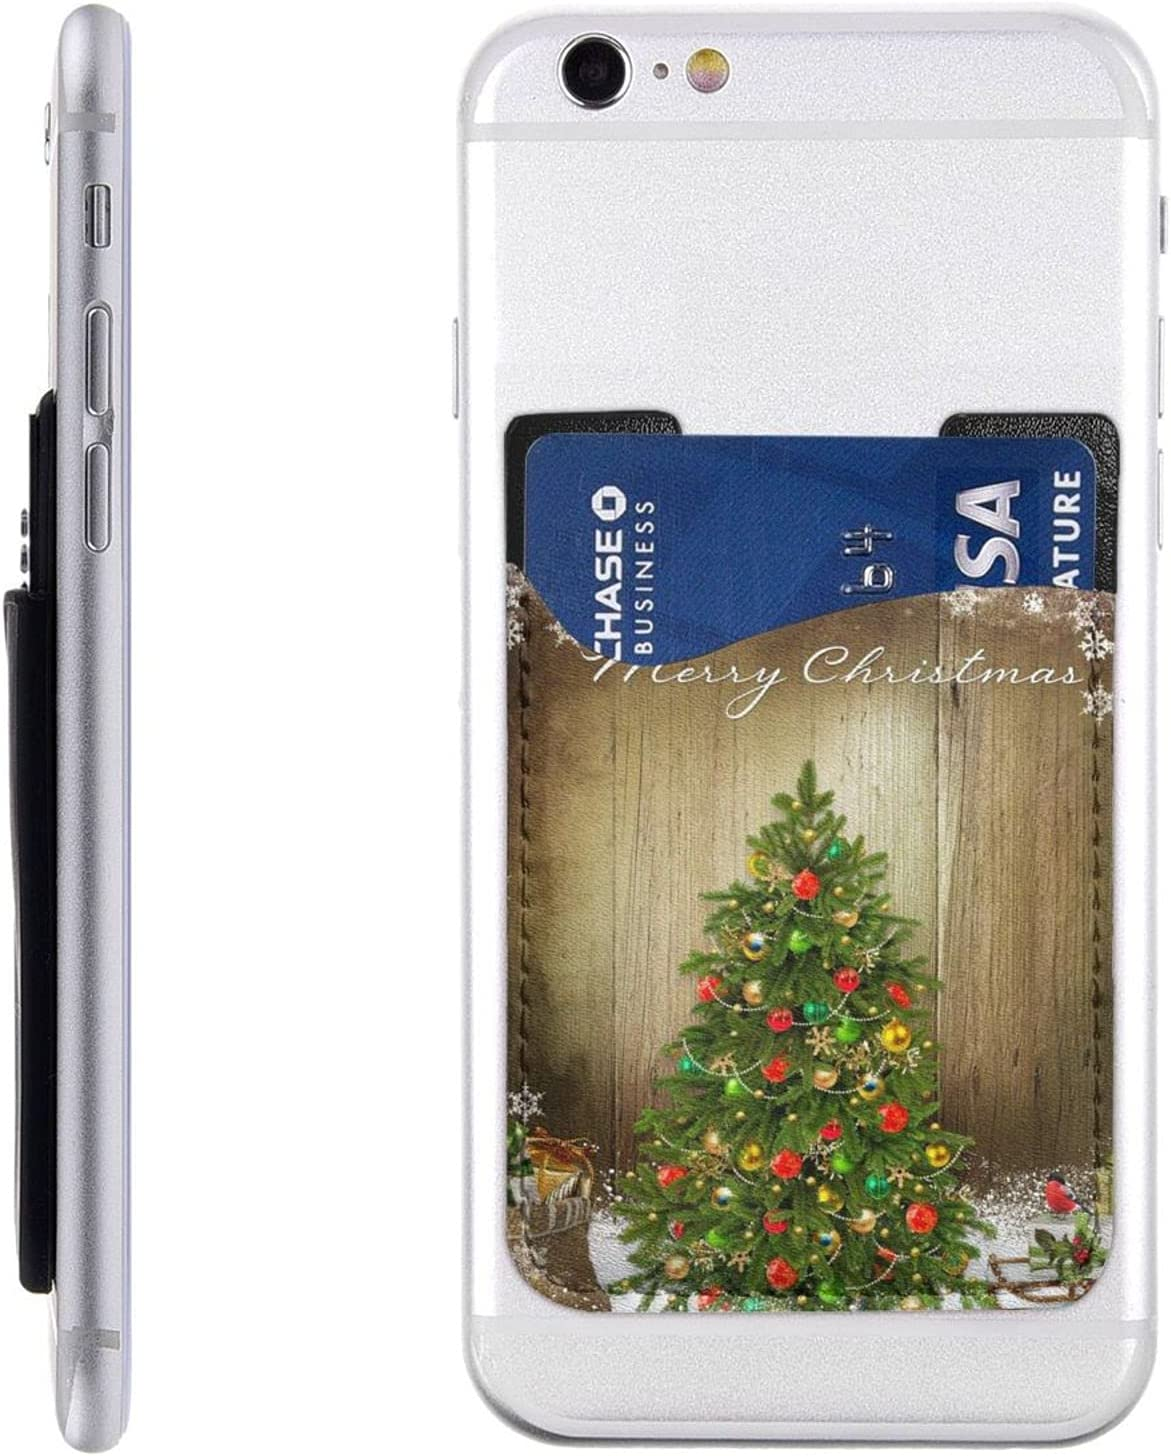 Christmas Tree Max 52% OFF Red Ornaments Phone Max 49% OFF Cell Card Stick Holder